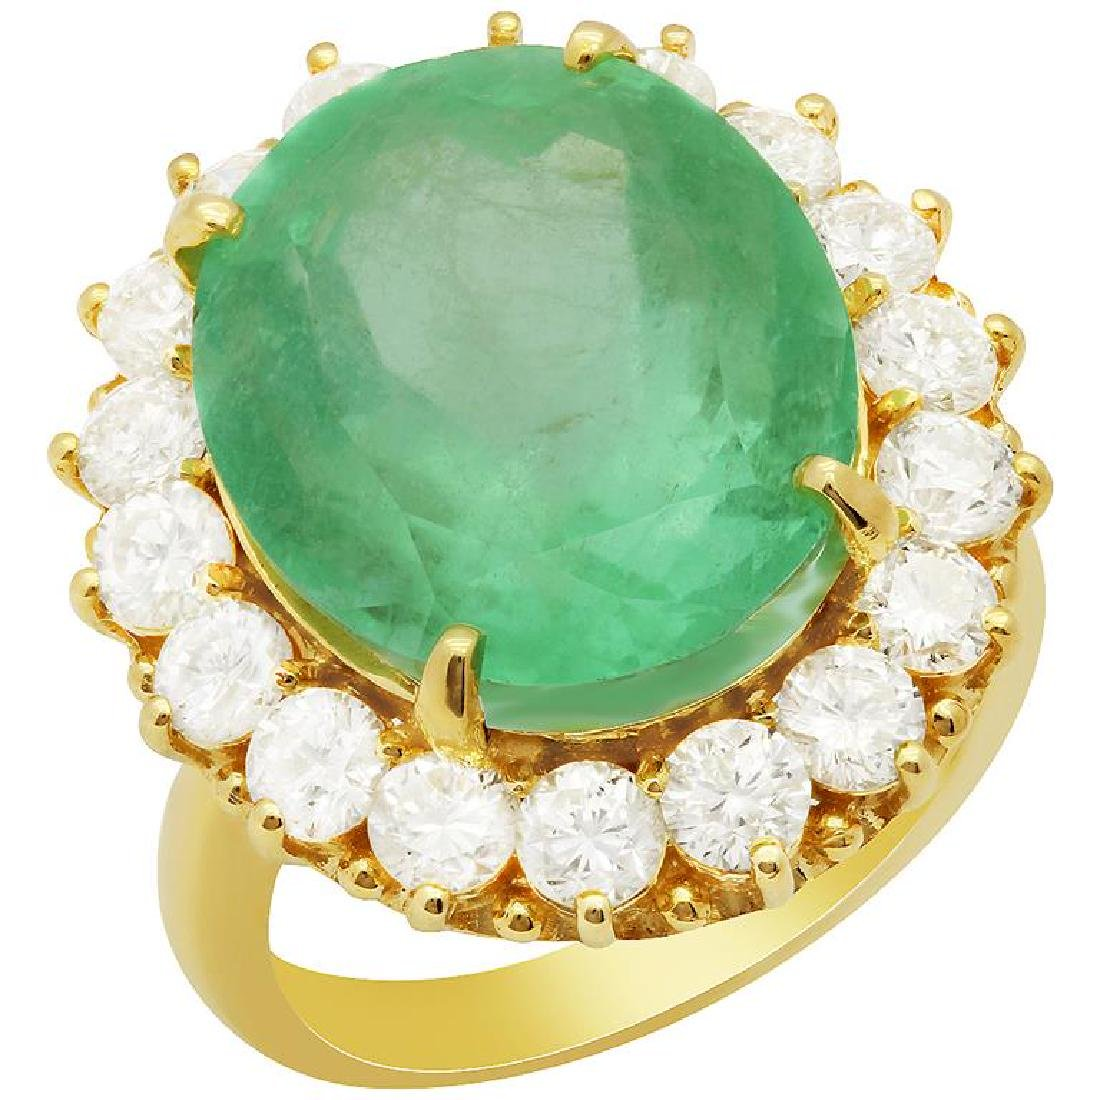 14k Yellow Gold 13.92ct Emerald 2.52ct Diamond Ring